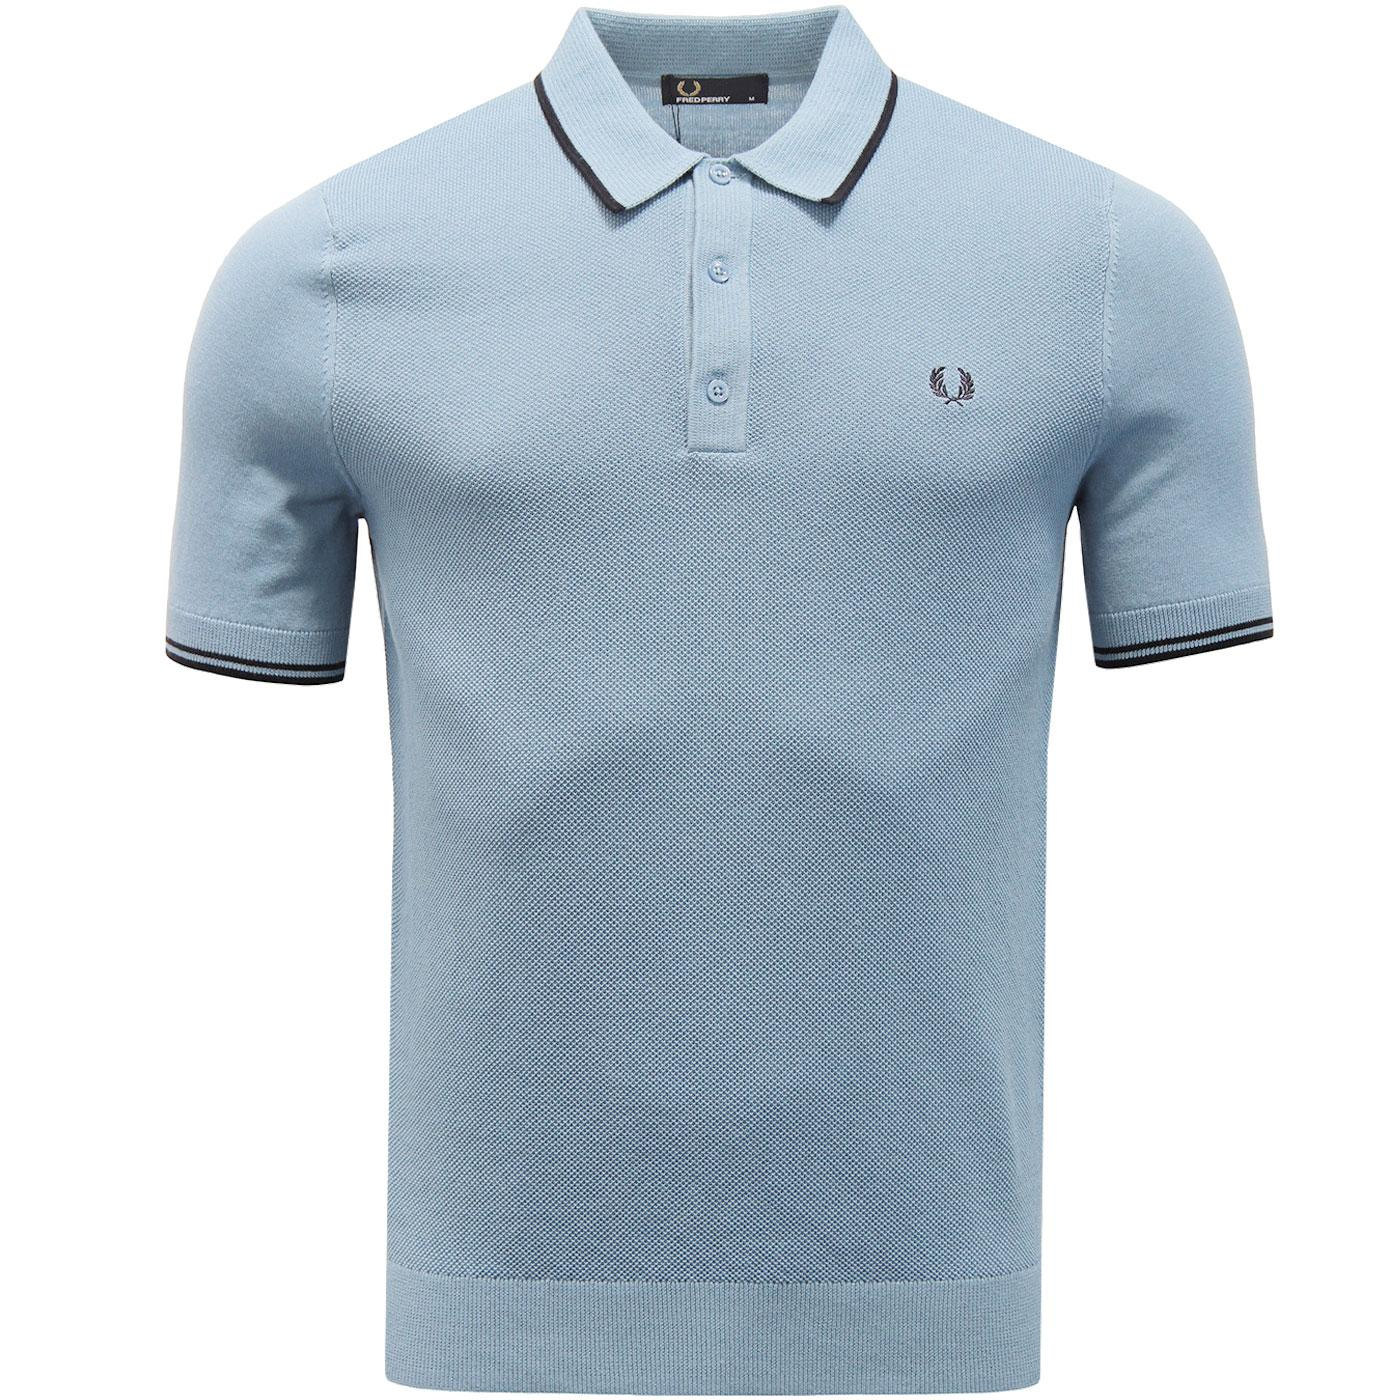 FRED PERRY Men's Mod Tipped Knitted Polo Shirt C